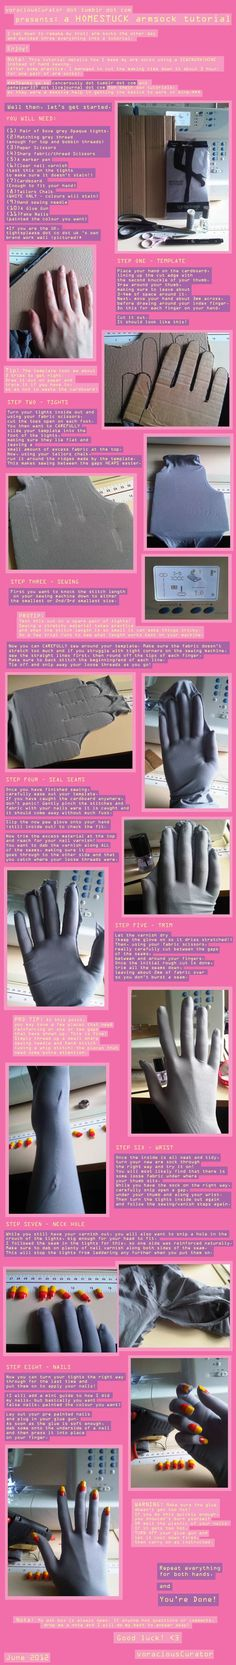 How to make an armsock for cosplay on a sewing machine. This is for a Homestuck cosplay but can be modified for a Weeping Angel. Cosplay Diy, Halloween Cosplay, Best Cosplay, Halloween 2015, Amazing Cosplay, Anime Cosplay, Larp, Diy Costumes, Cosplay Costumes